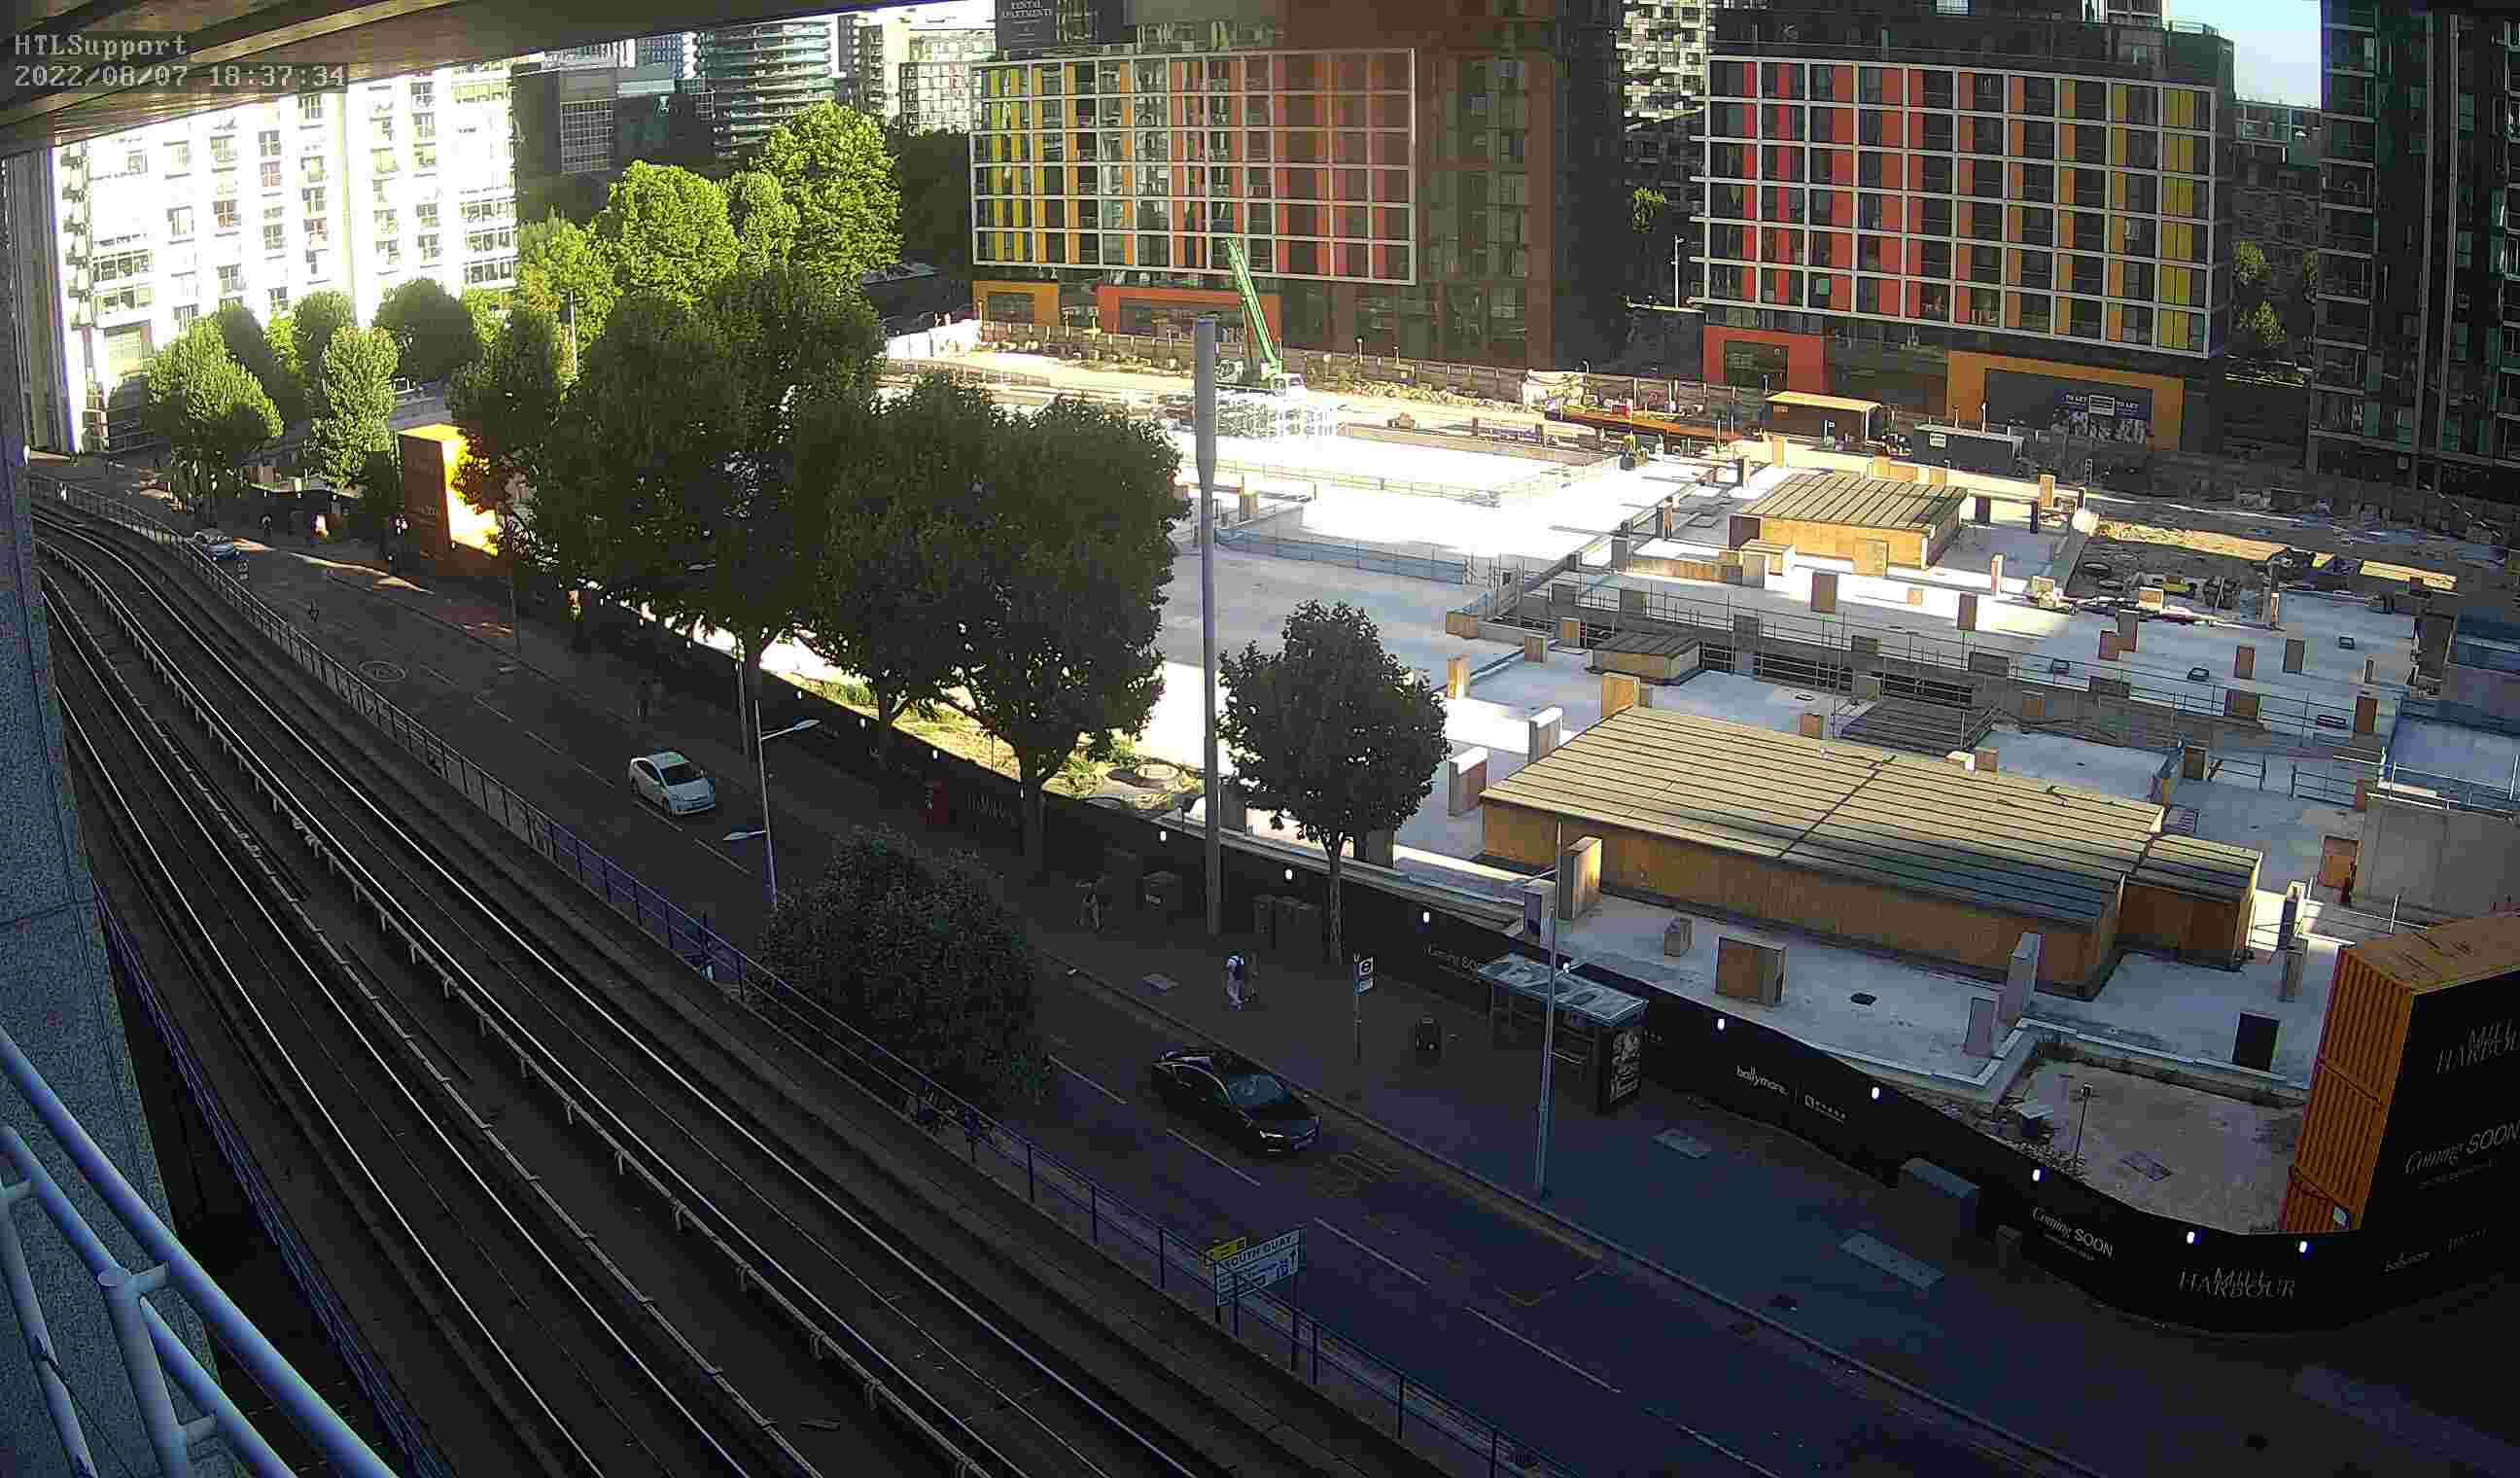 HTL Group London Telecity Webcam- Image will refresh every 1 Minutes 0 Seconds